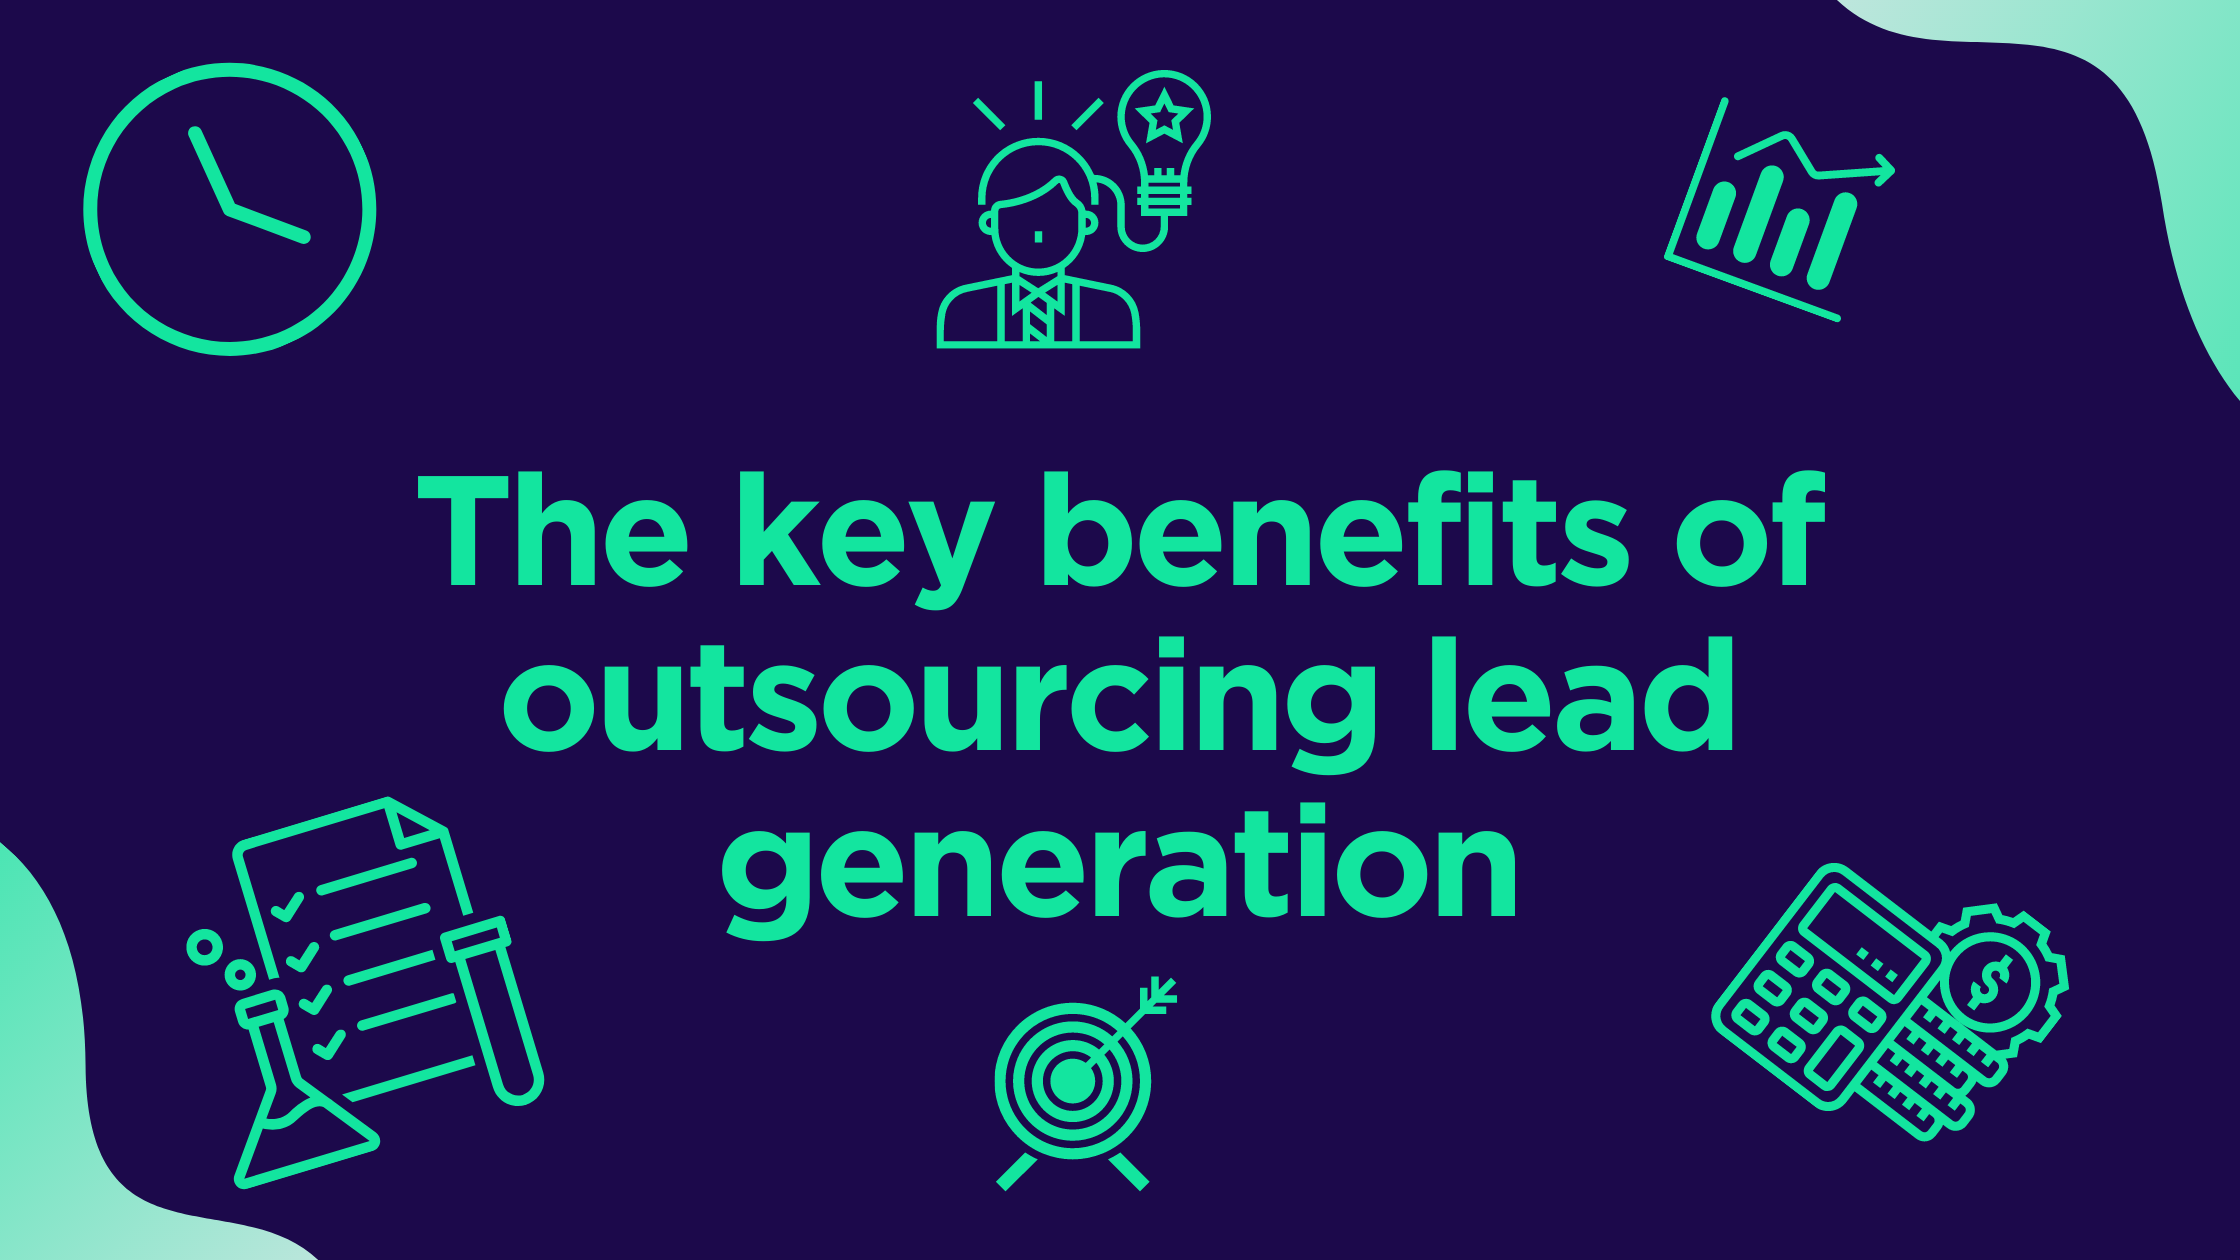 the key benefits of outsourcing lead generation